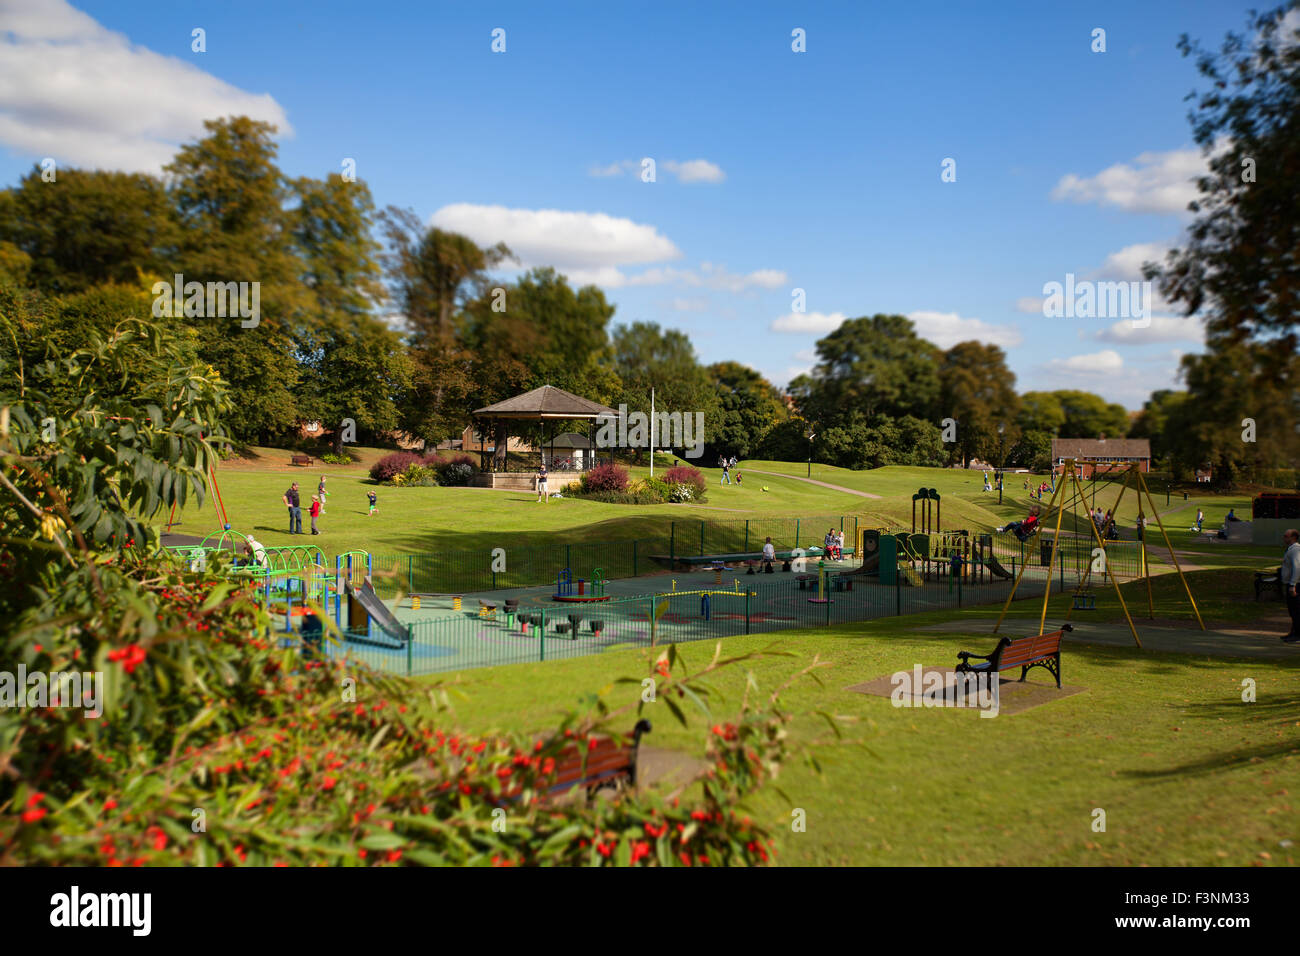 Play park and Bandstand in Oakham - Stock Image